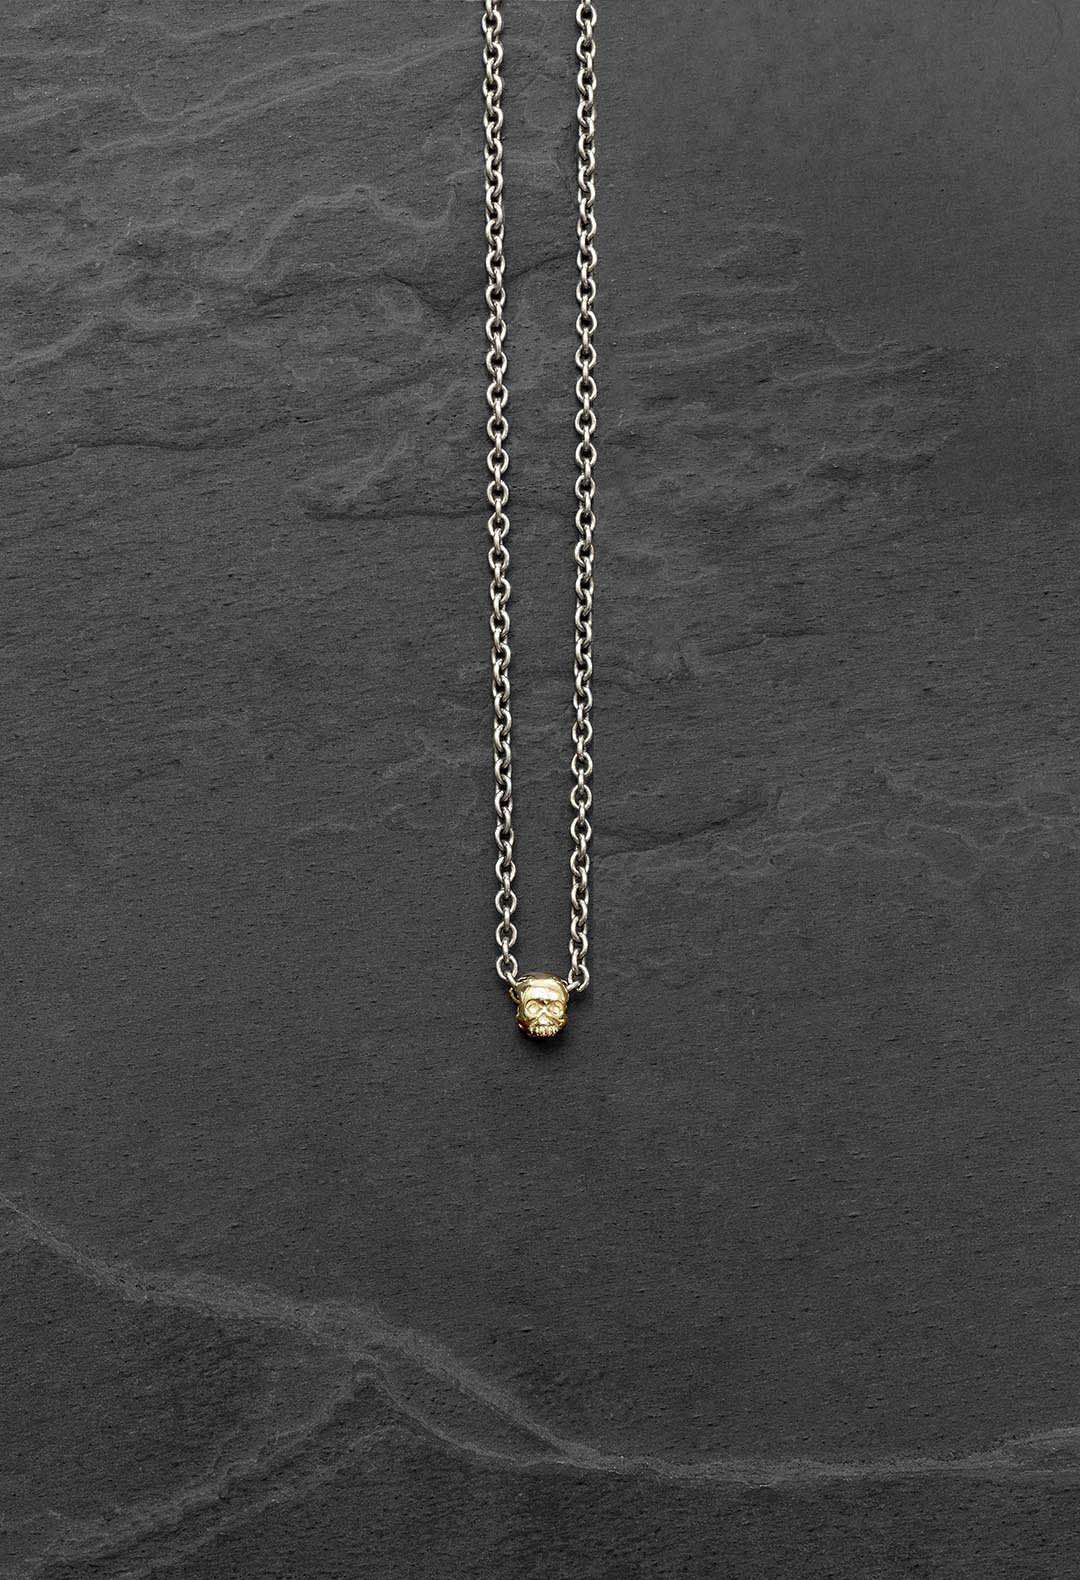 Gold skull bead necklace